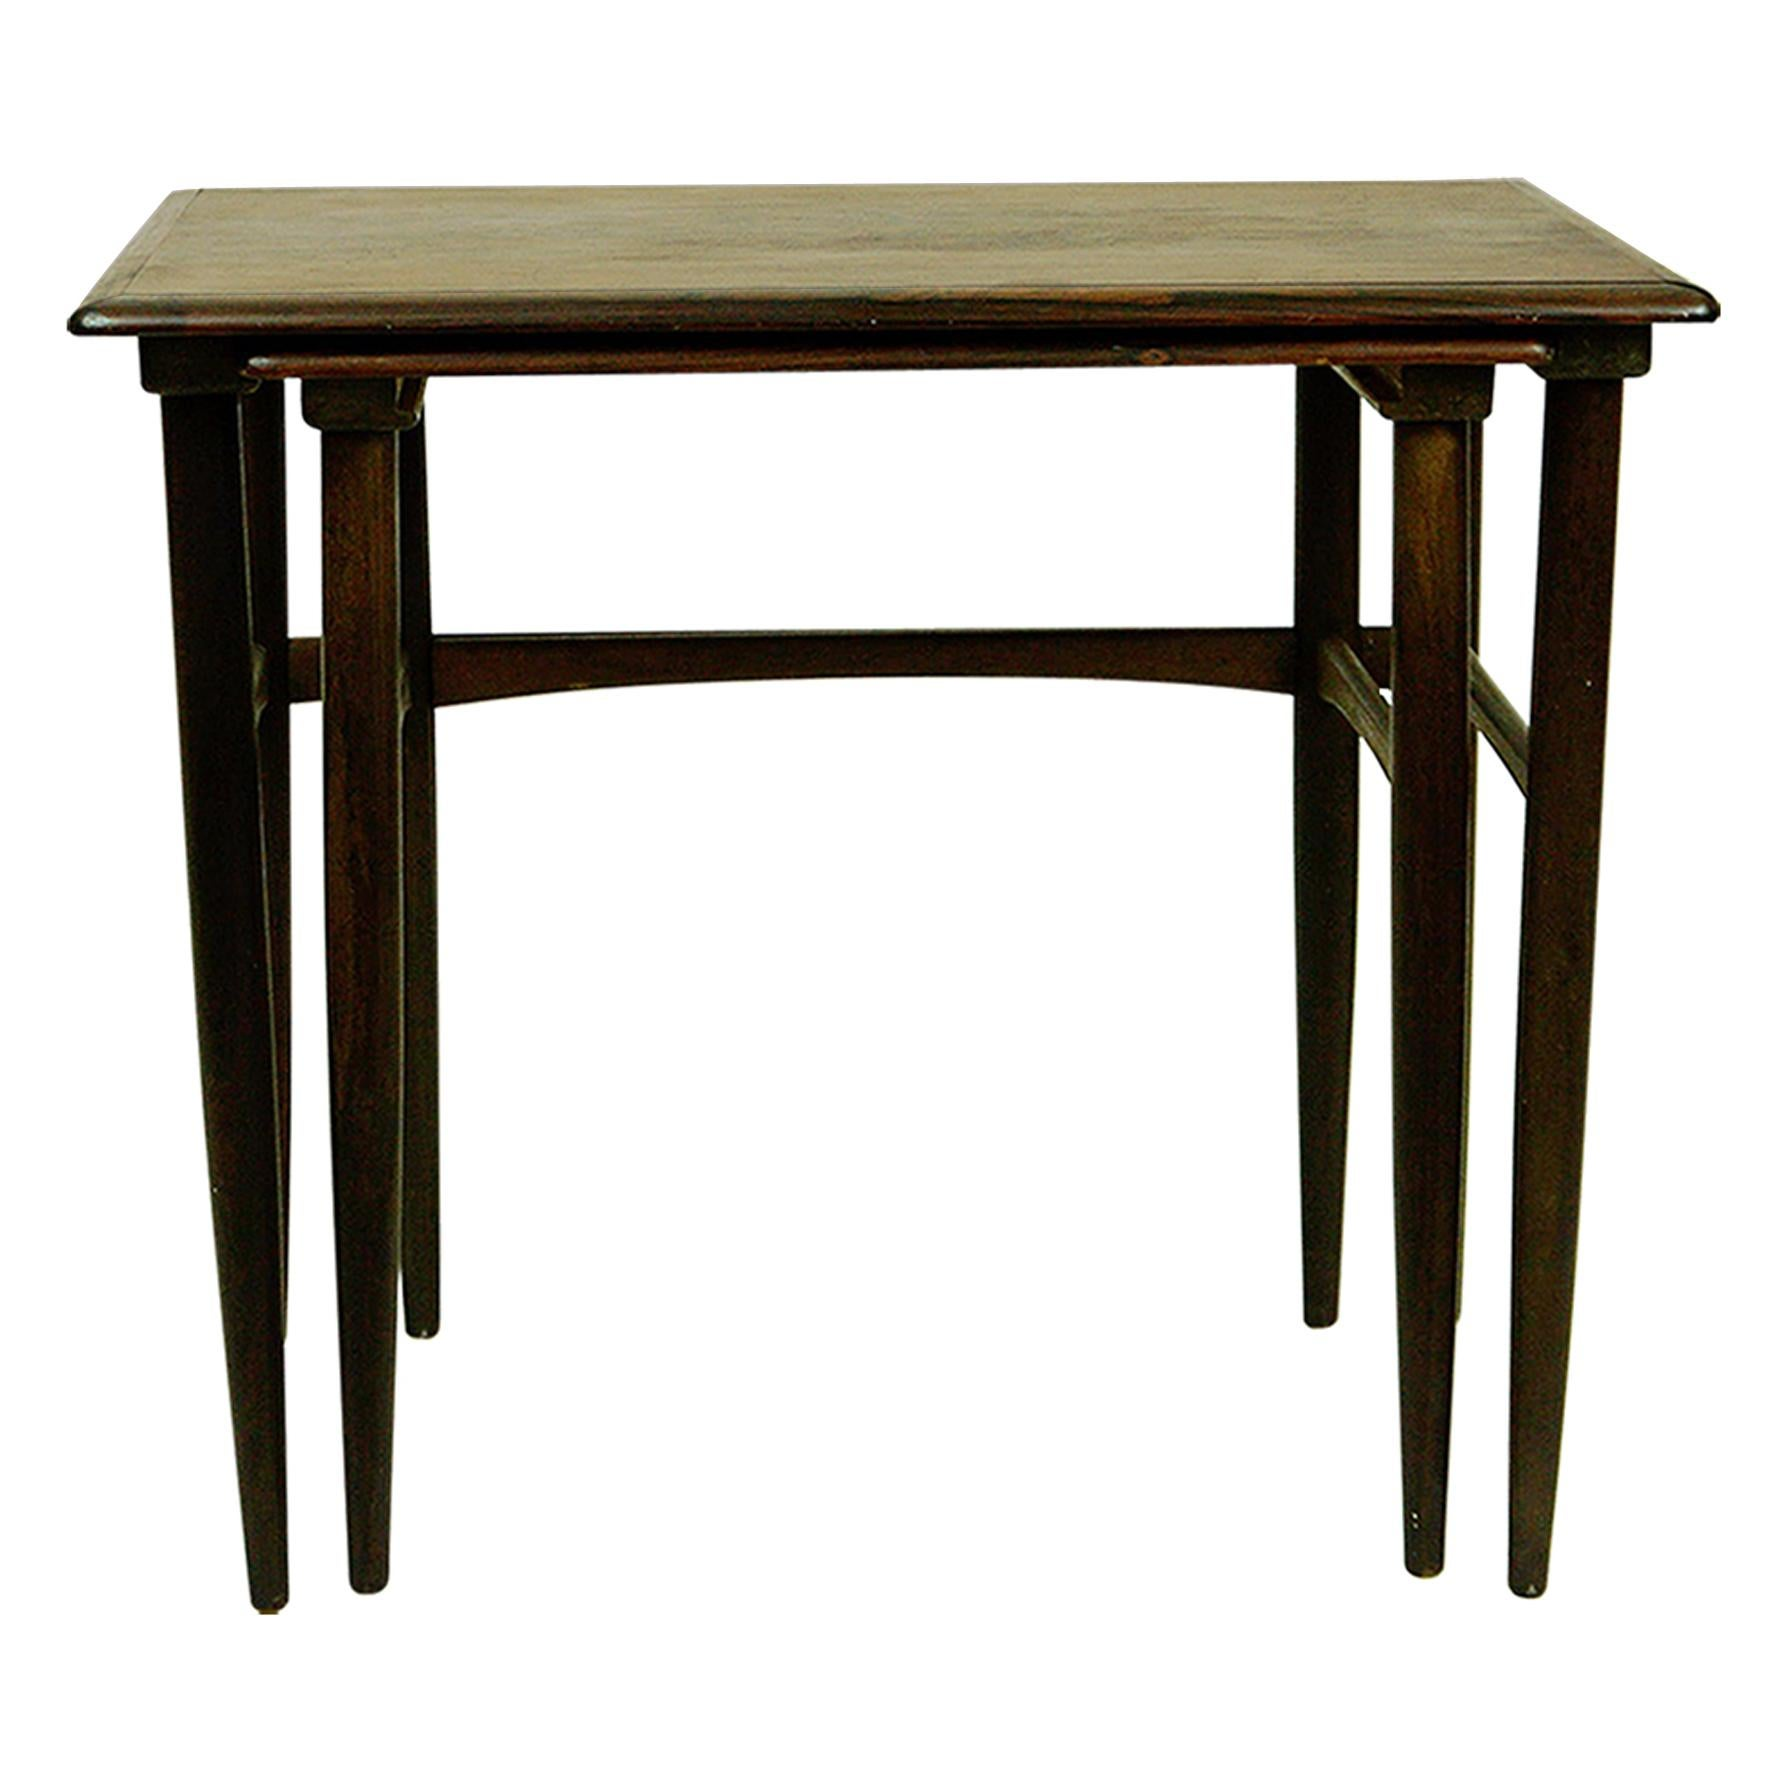 Set of Two Scandinavian Modern Rosewood Nesting Tables by Poul Hundevad